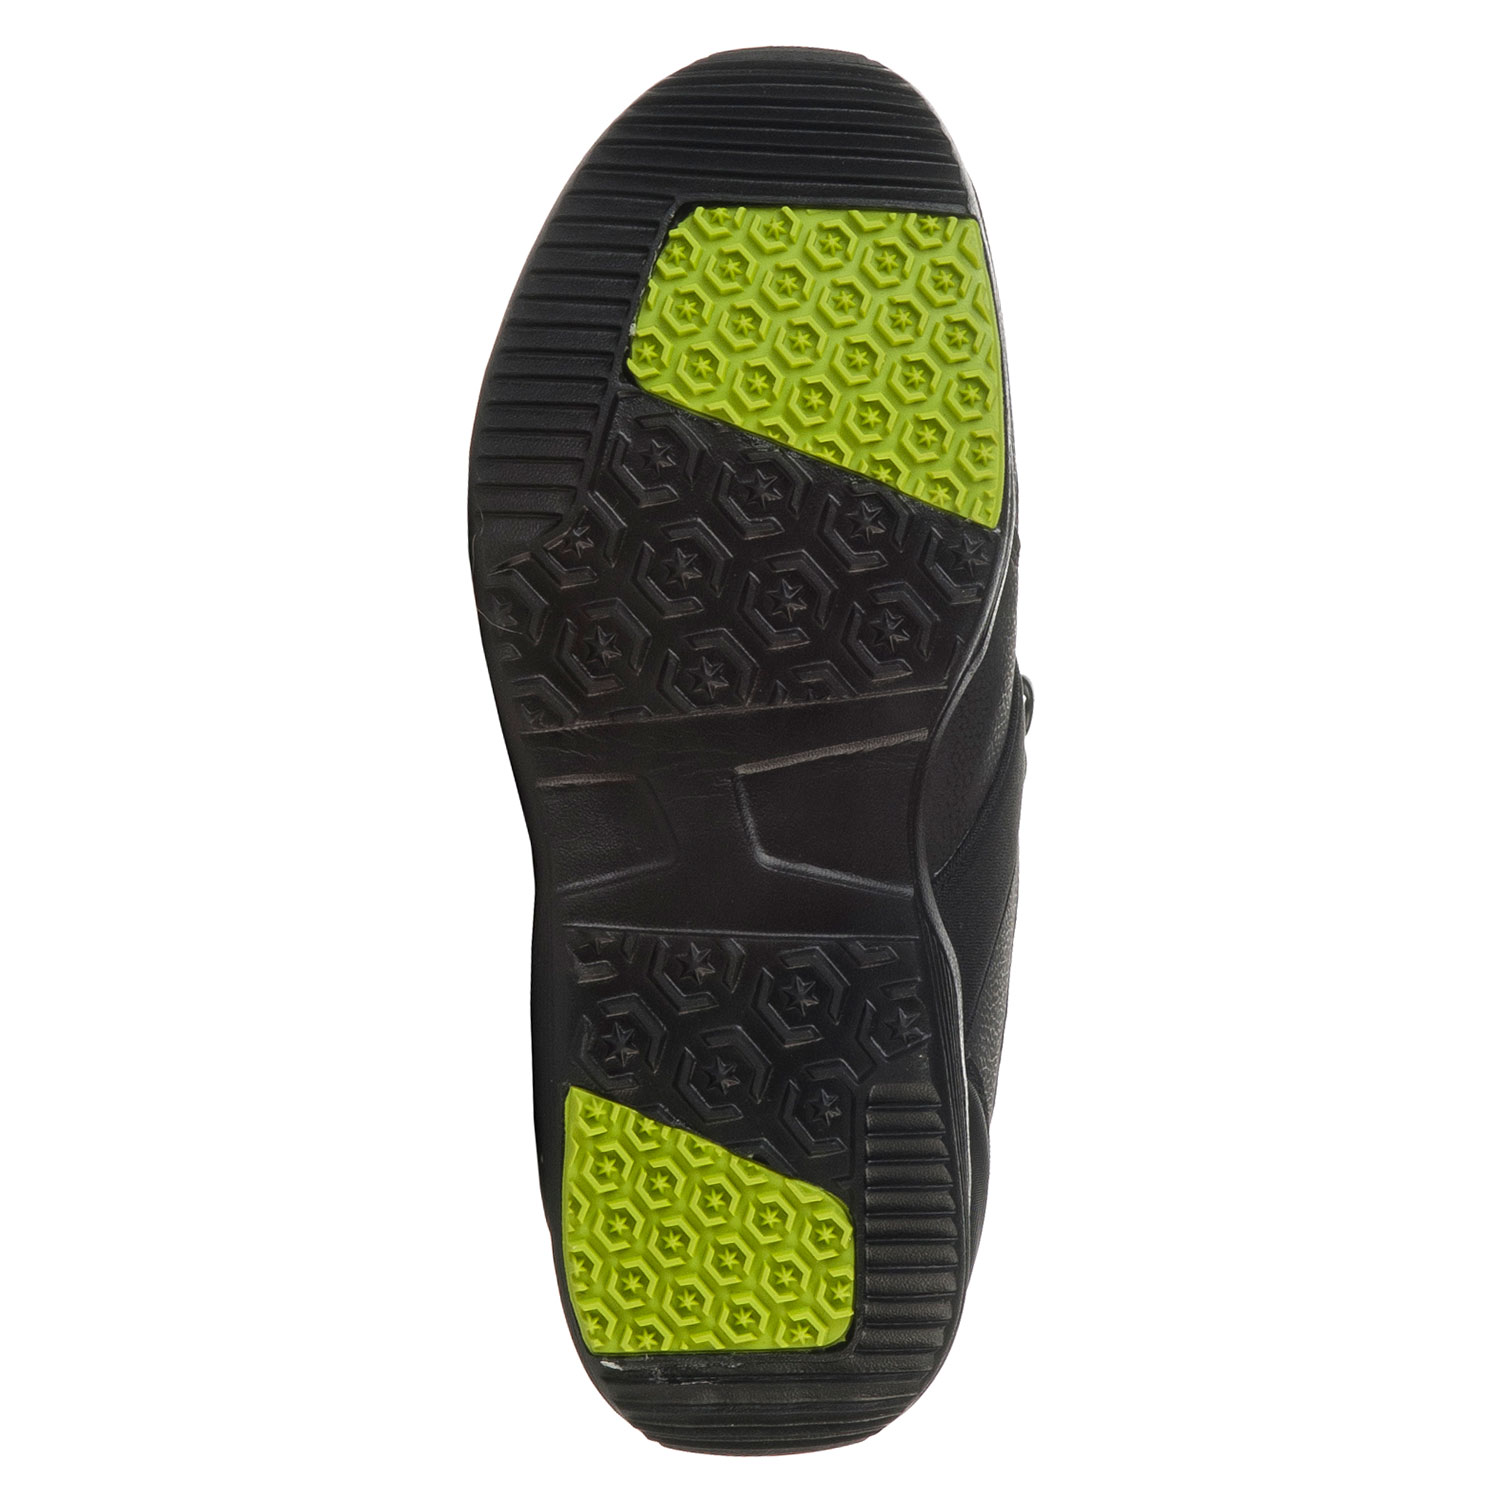 fcad4e3746b Boty na snowboard Gravity Manual black lime